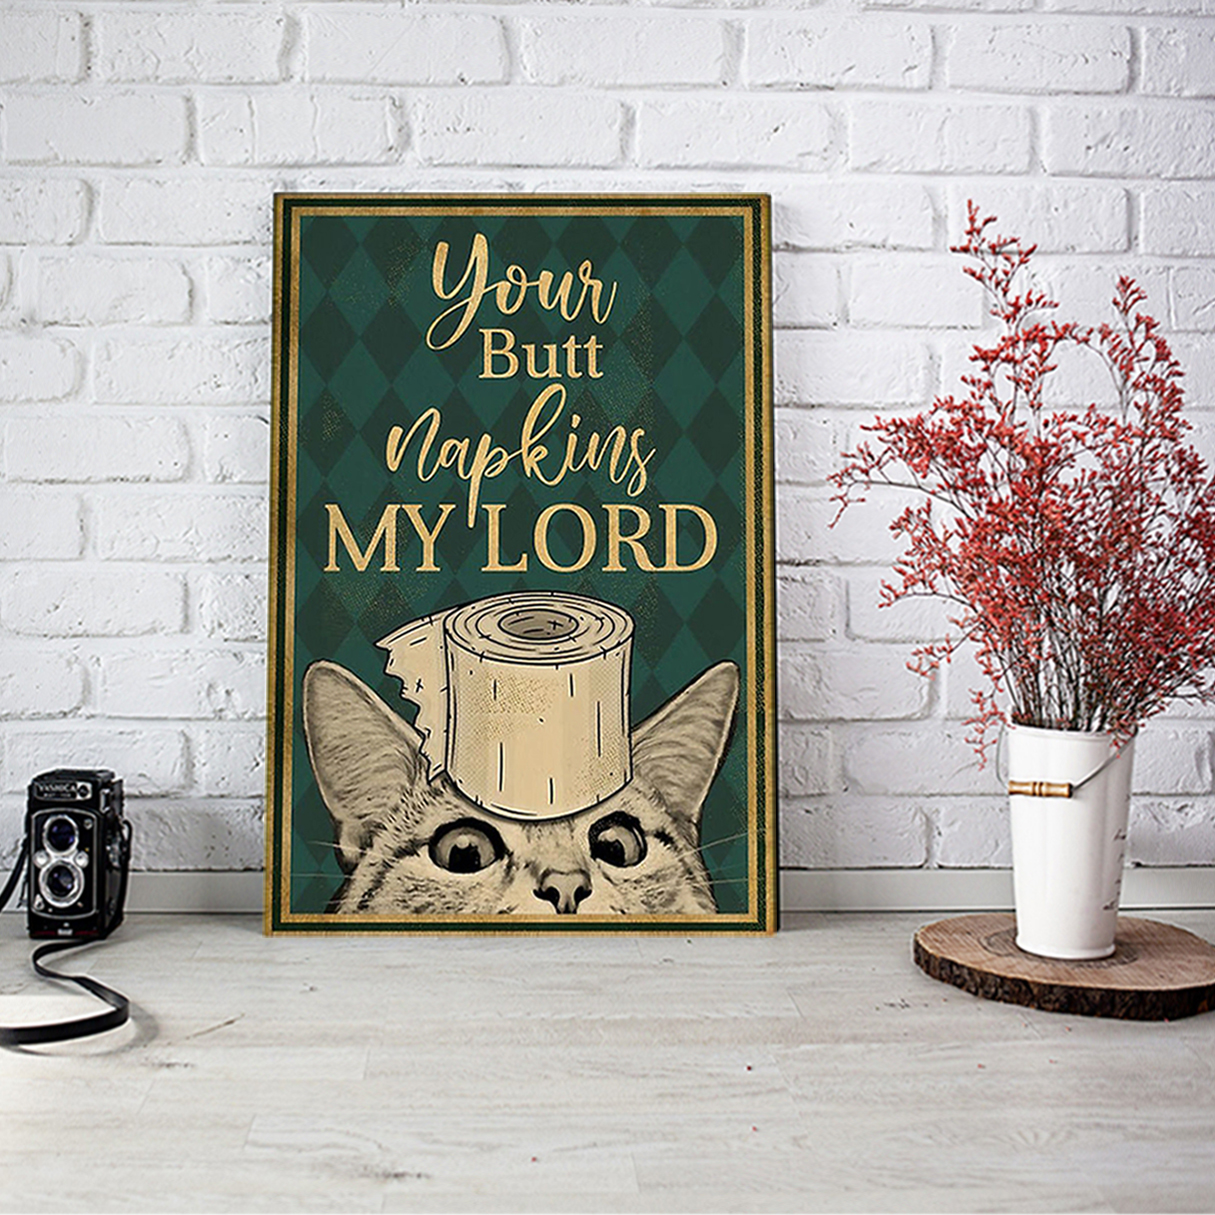 Cat your butt napkins my lord poster A1